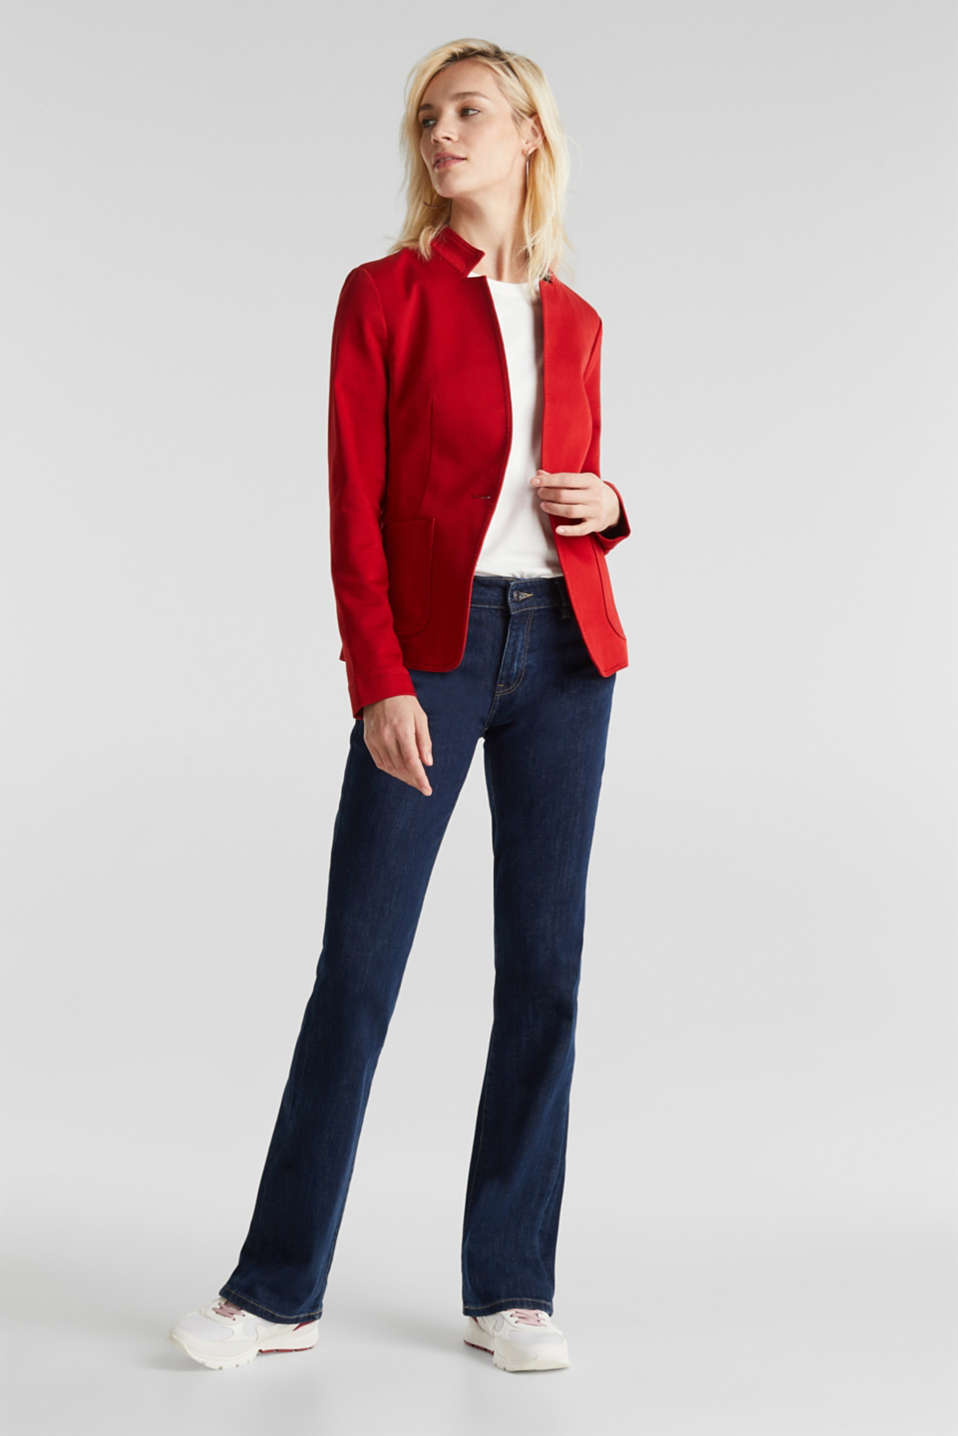 Blazer with an adjustable collar, stretch cotton, DARK RED, detail image number 1